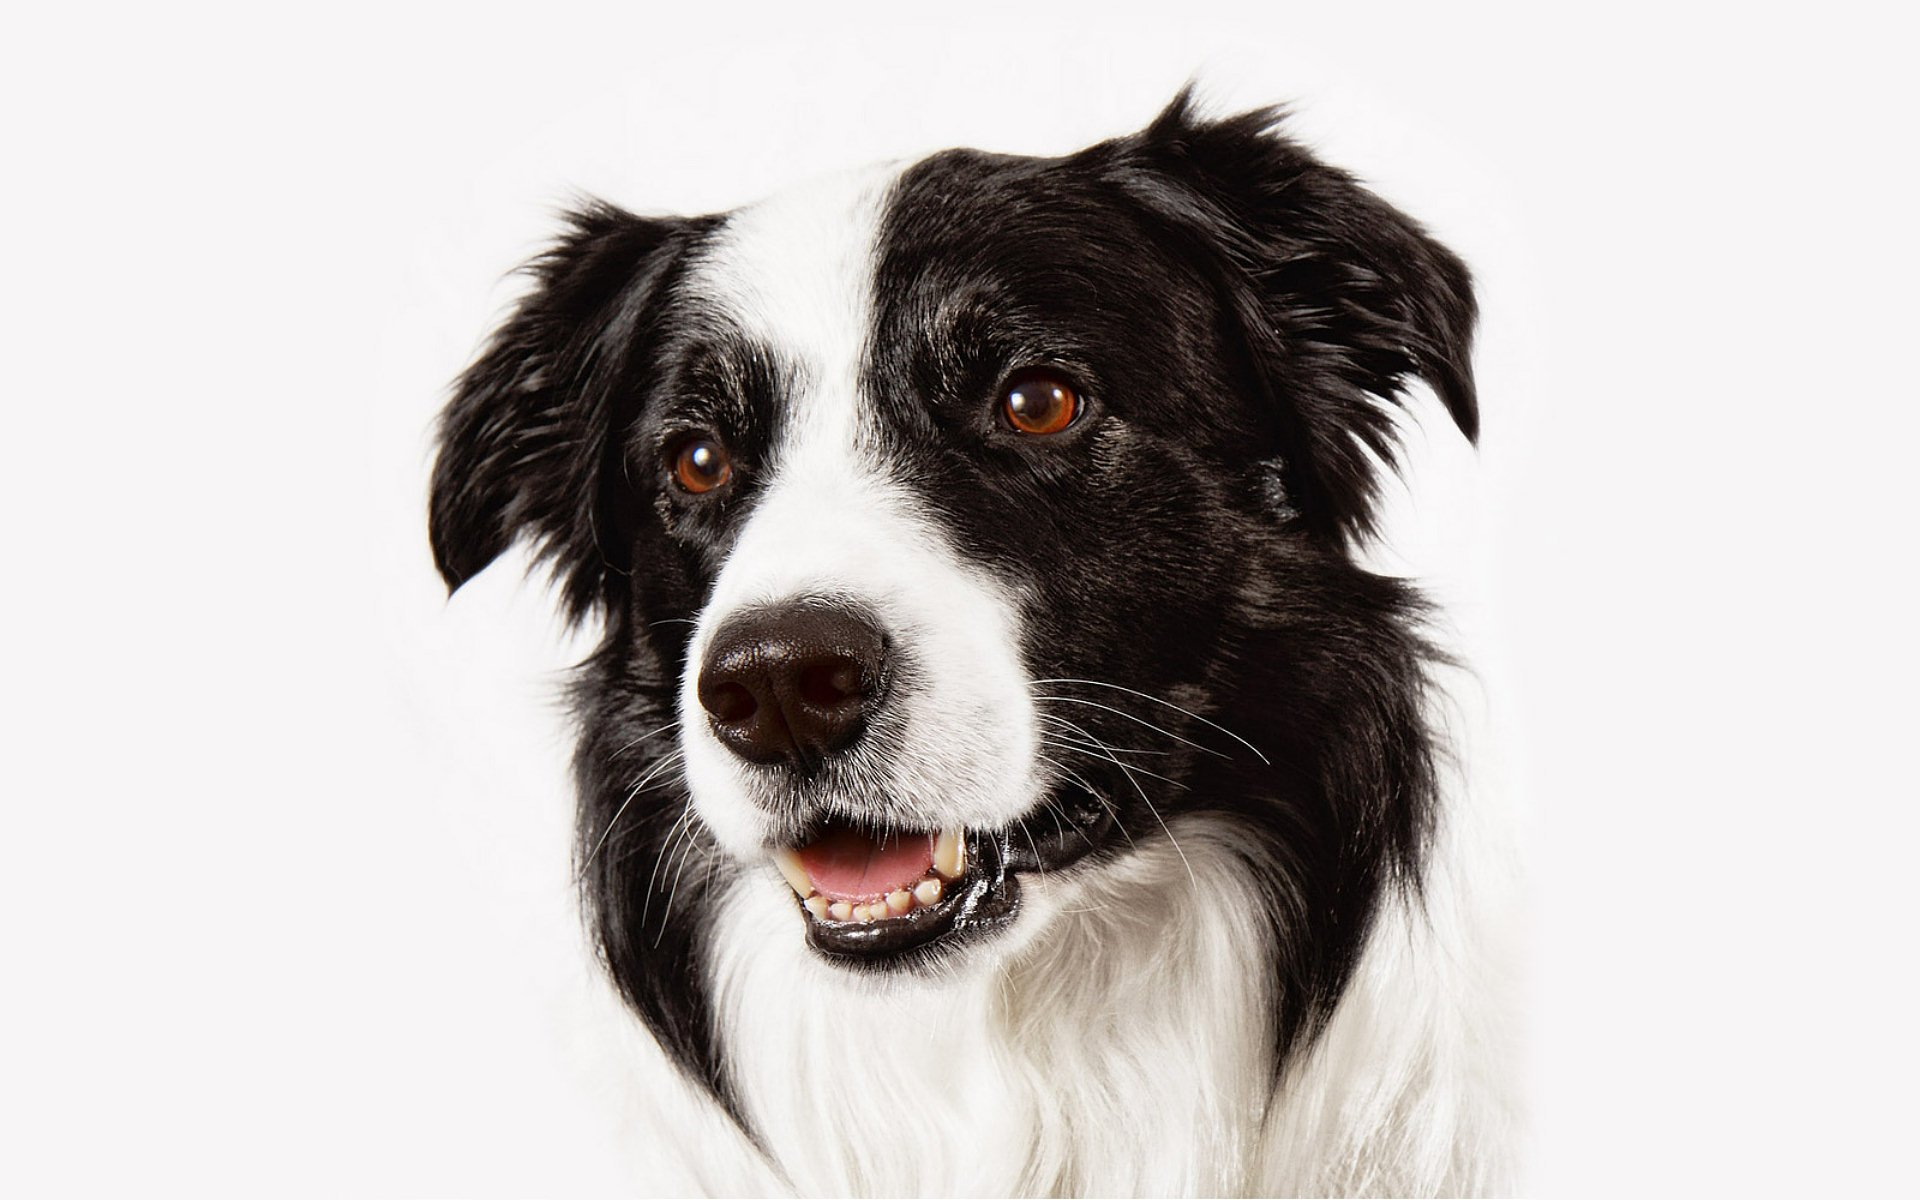 Iphone X Wallpaper With Border Dog Full Hd Wallpaper And Background Image 1920x1200